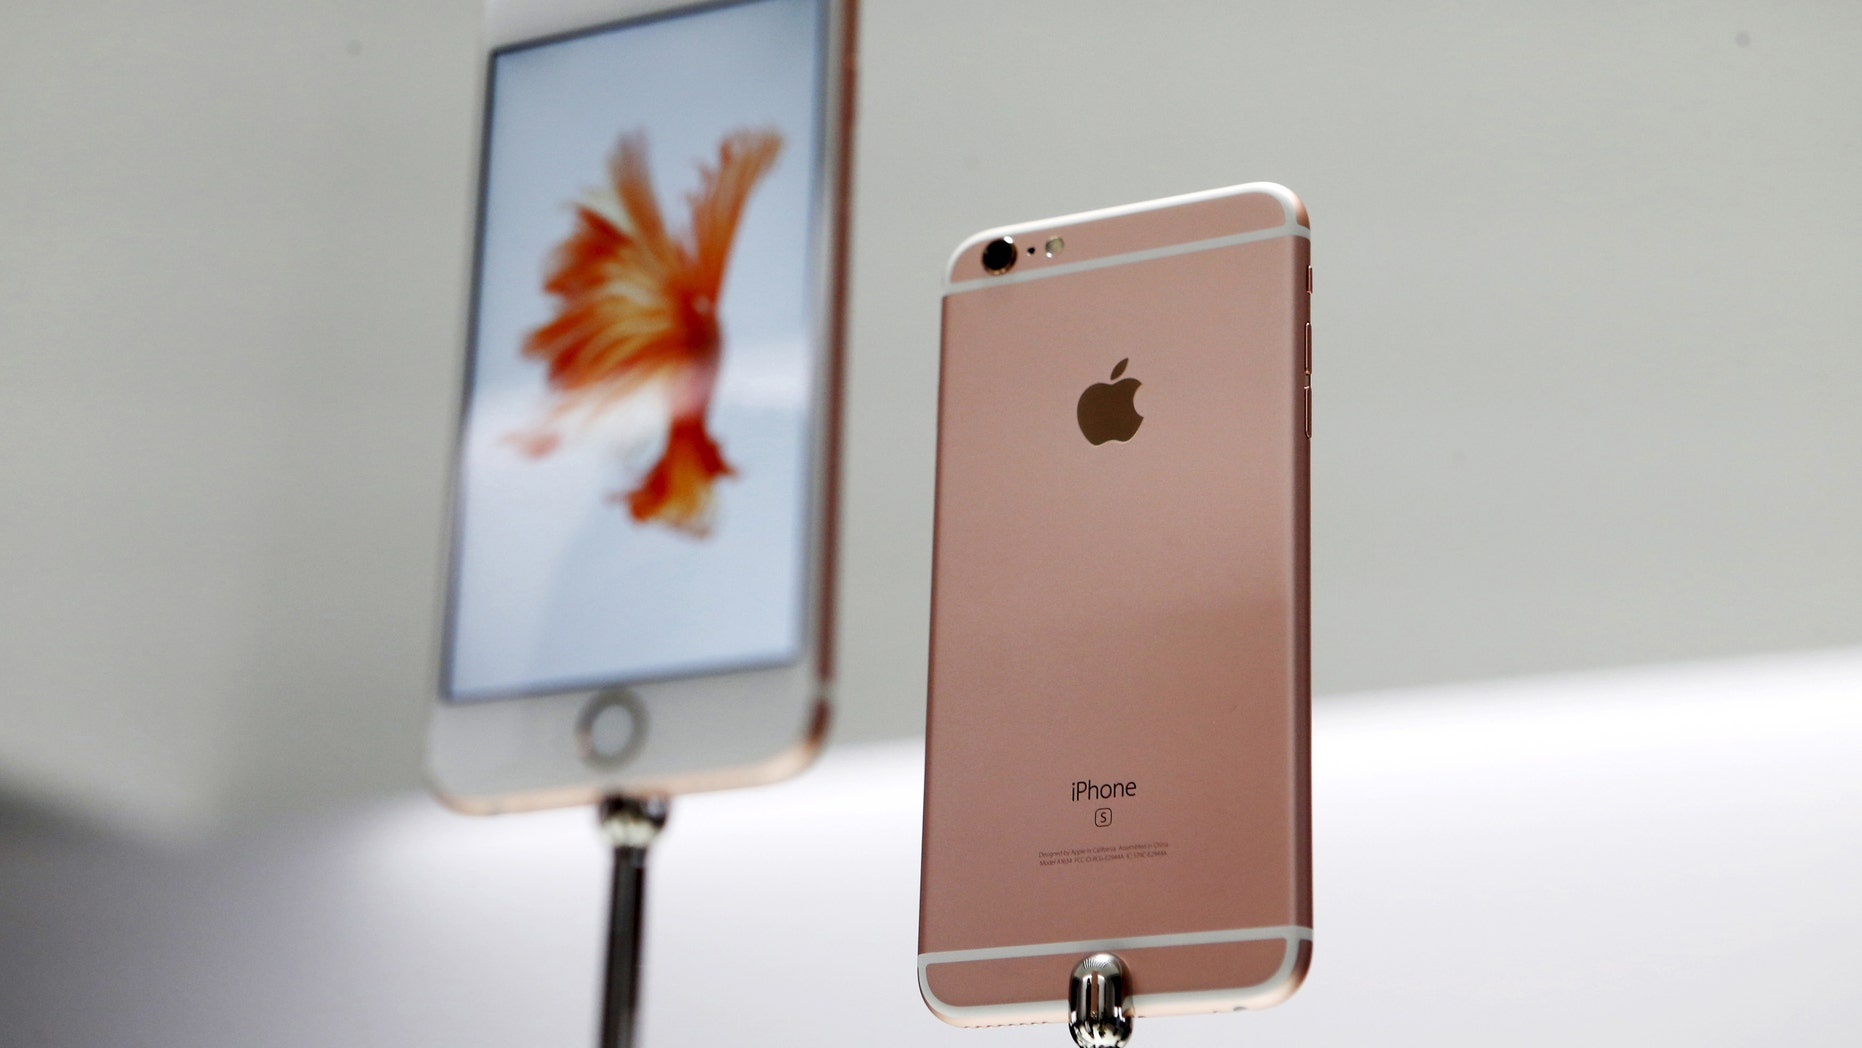 The Apple iPhone 6s and 6s Plus are displayed during an Apple media event in San Francisco, Calif., Sept. 9, 2015. (REUTERS/Beck Diefenbach)